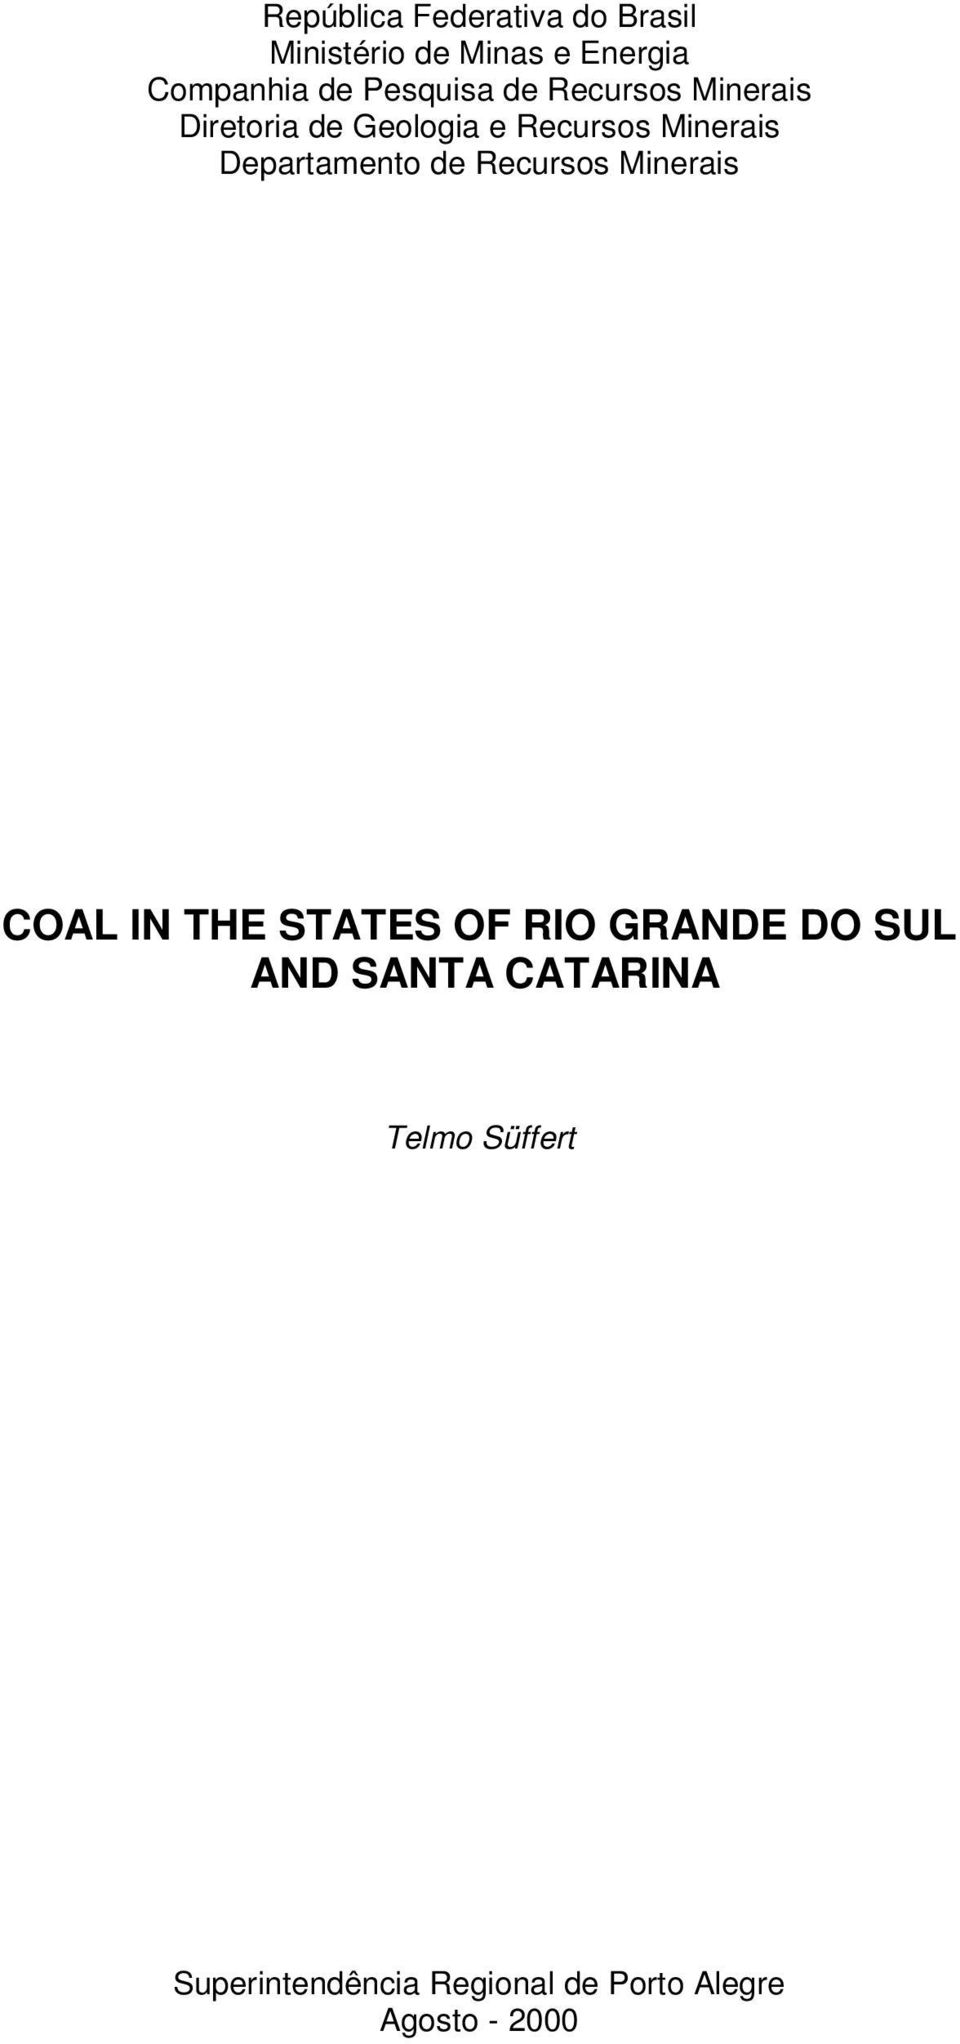 Departamento de Recursos Minerais COAL IN THE STATES OF RIO GRANDE DO SUL